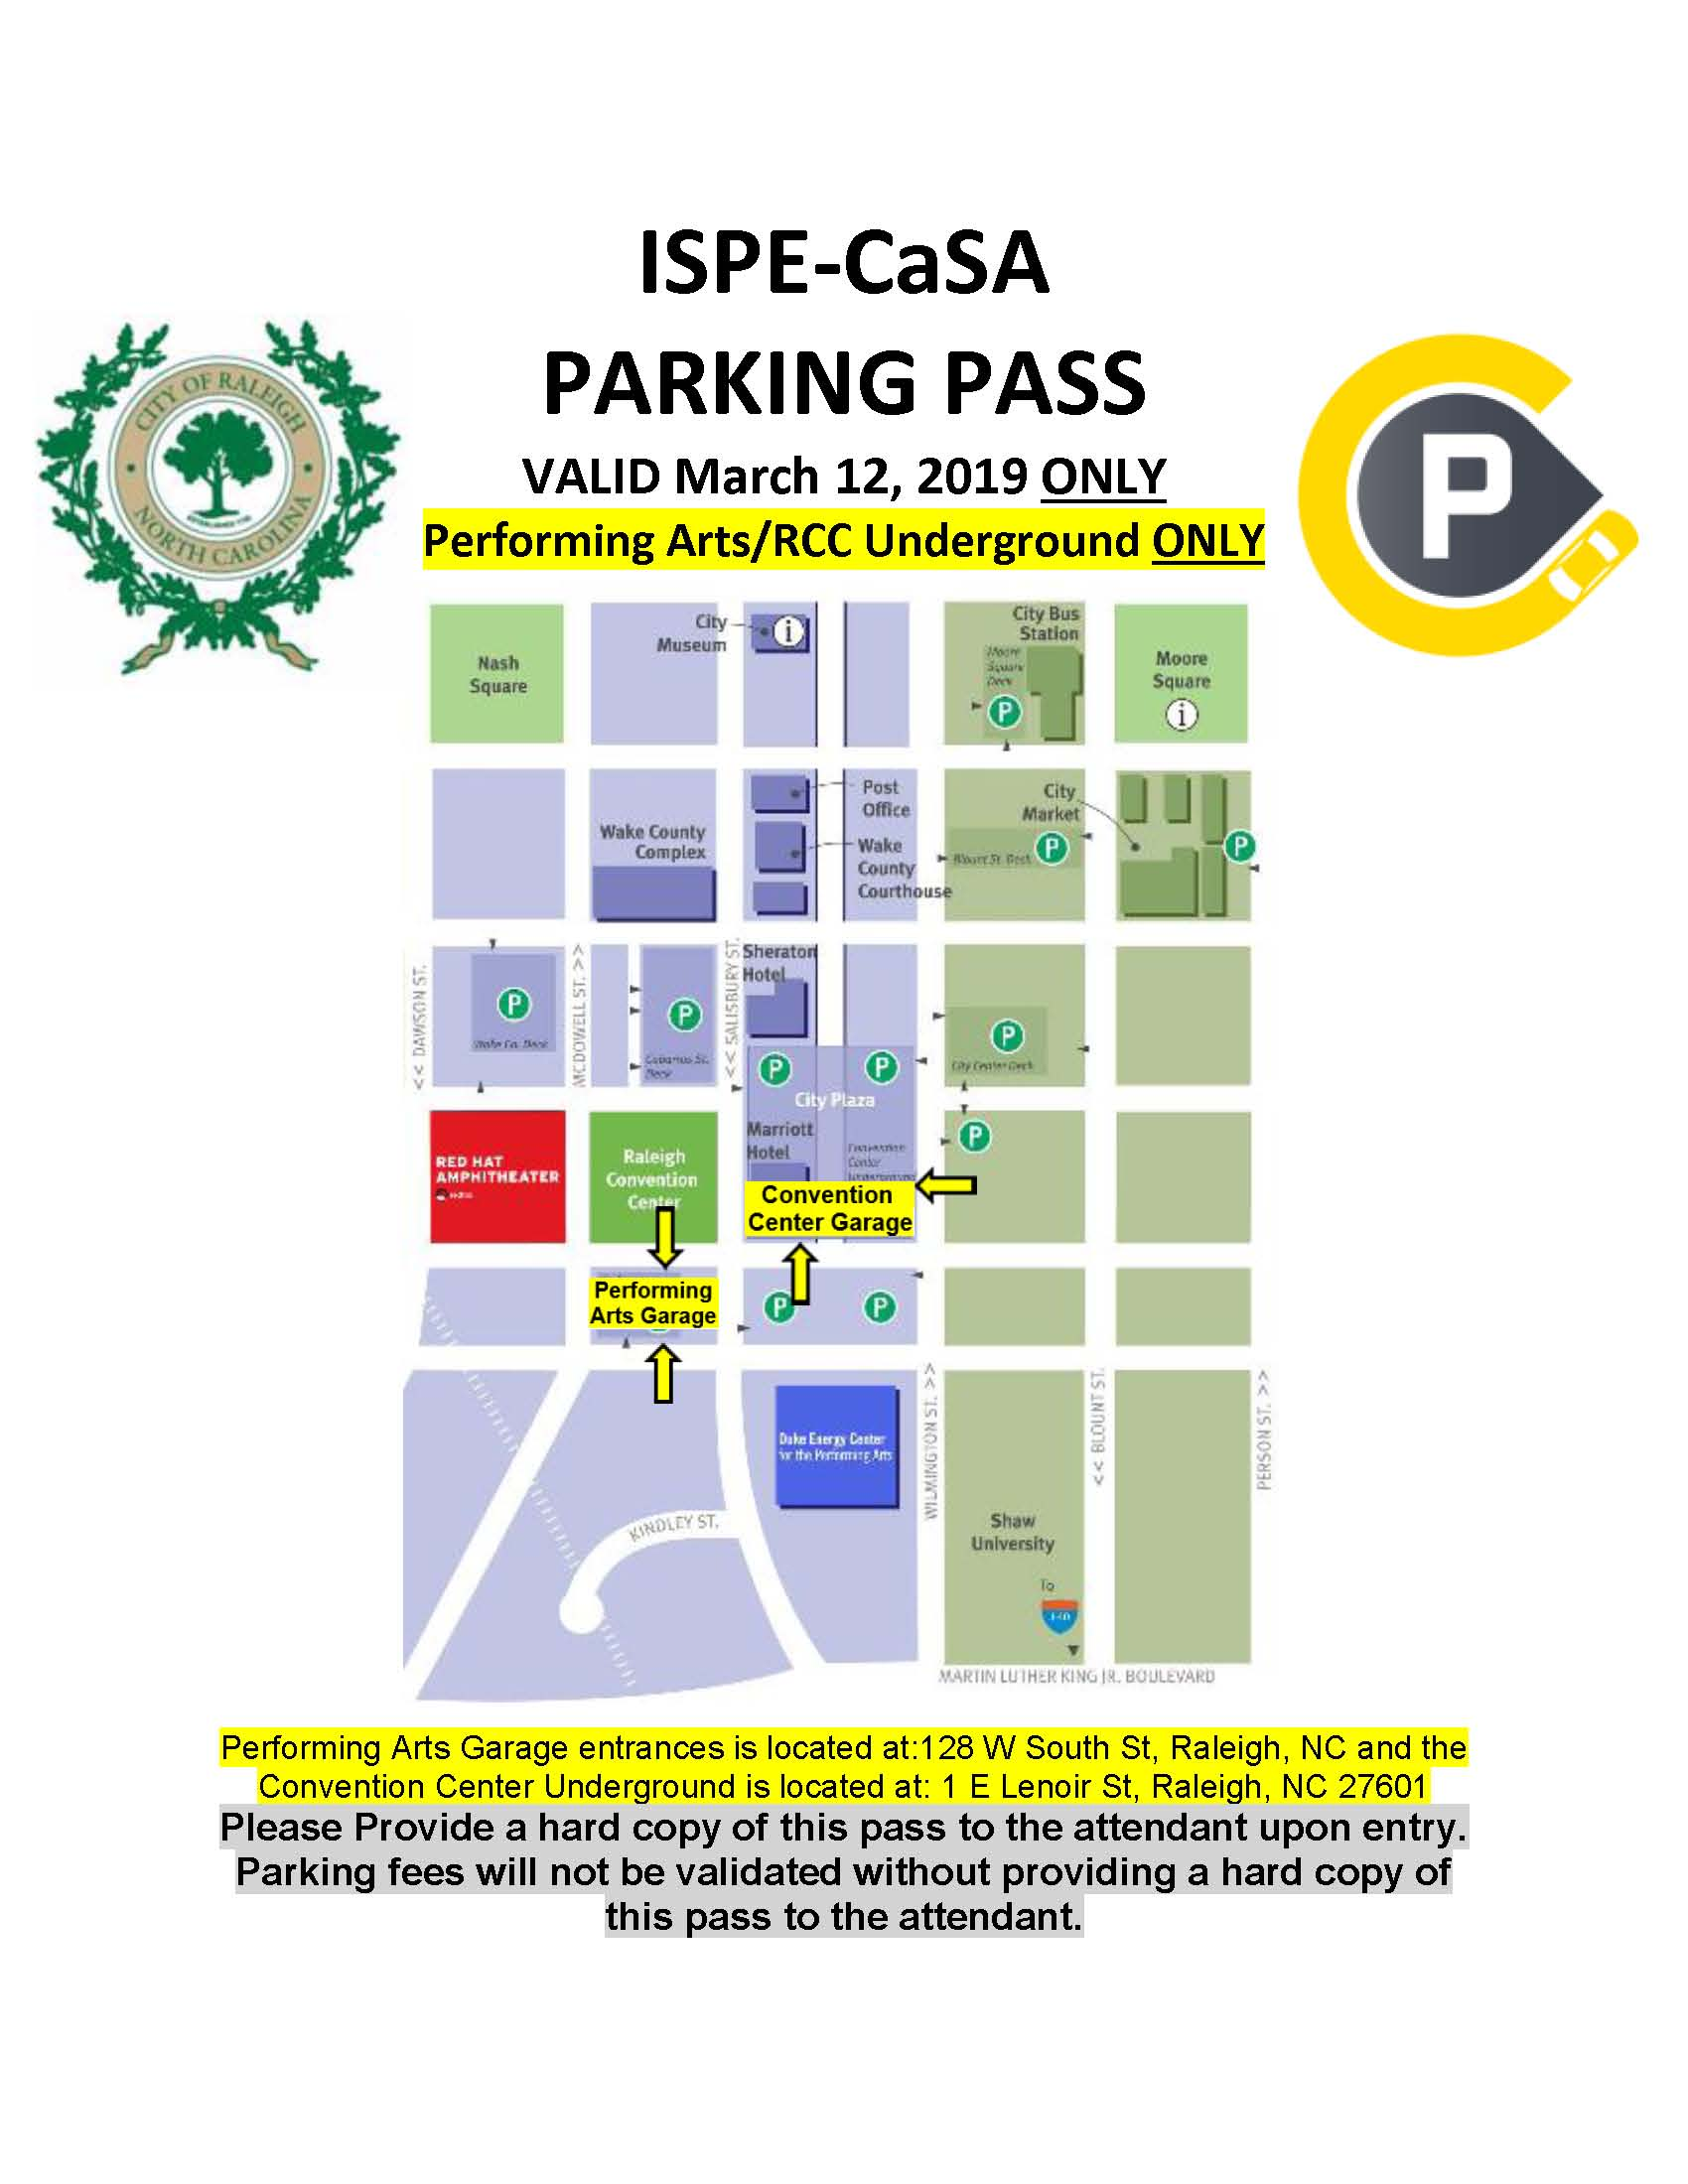 ISPE-CaSA 2016 Technology Conference PARKING MAP & PASS